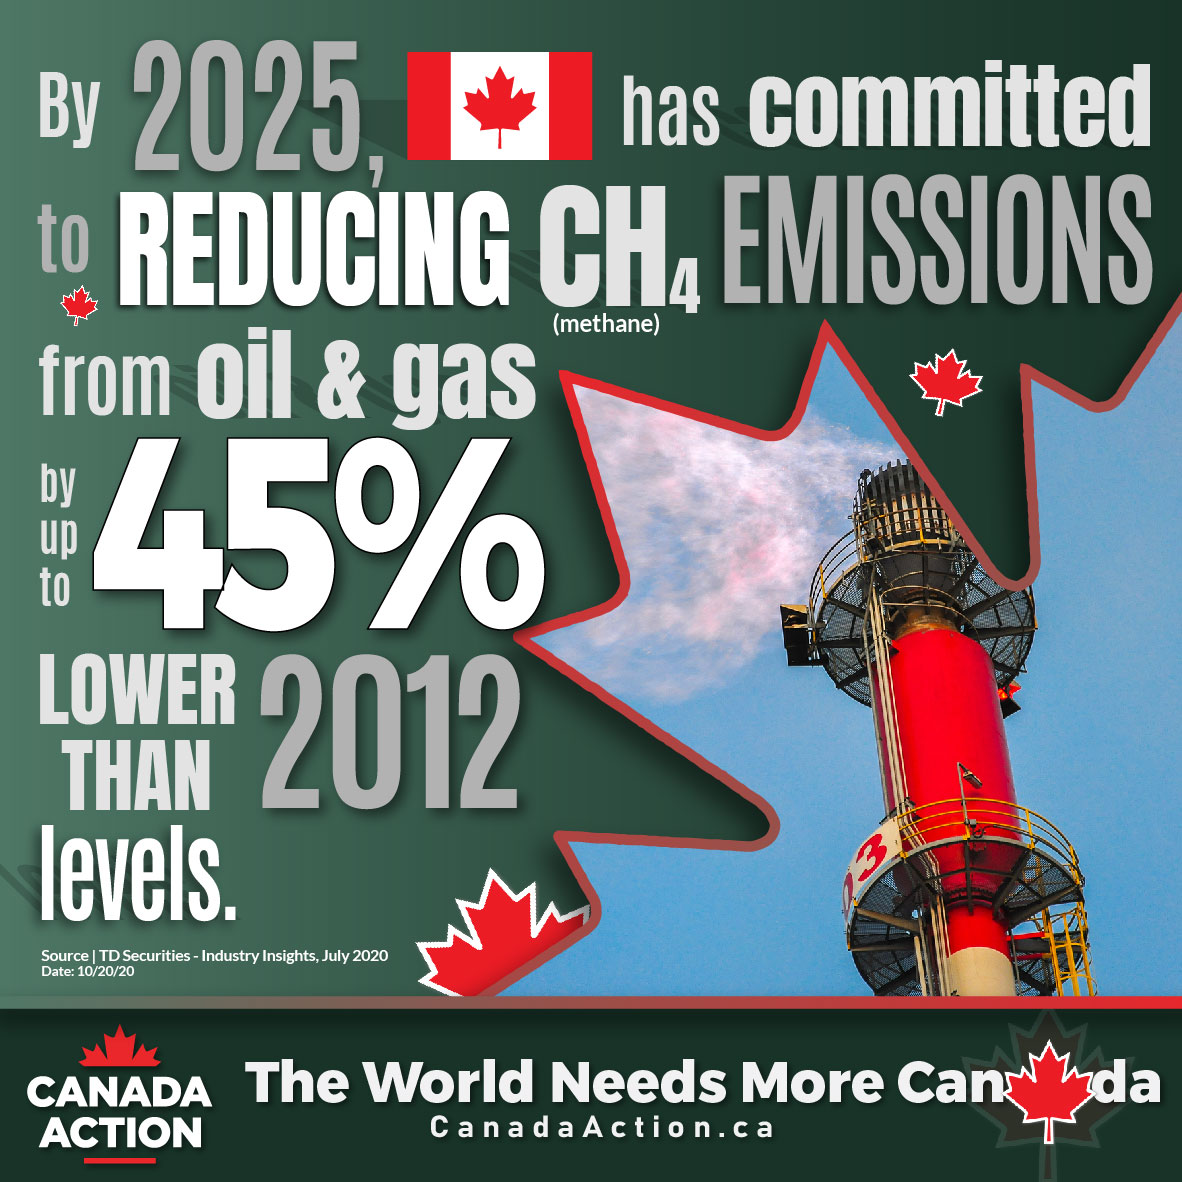 Canada Plans to Reduce Methane Emissions from Oil and Gas by 45% by 2025